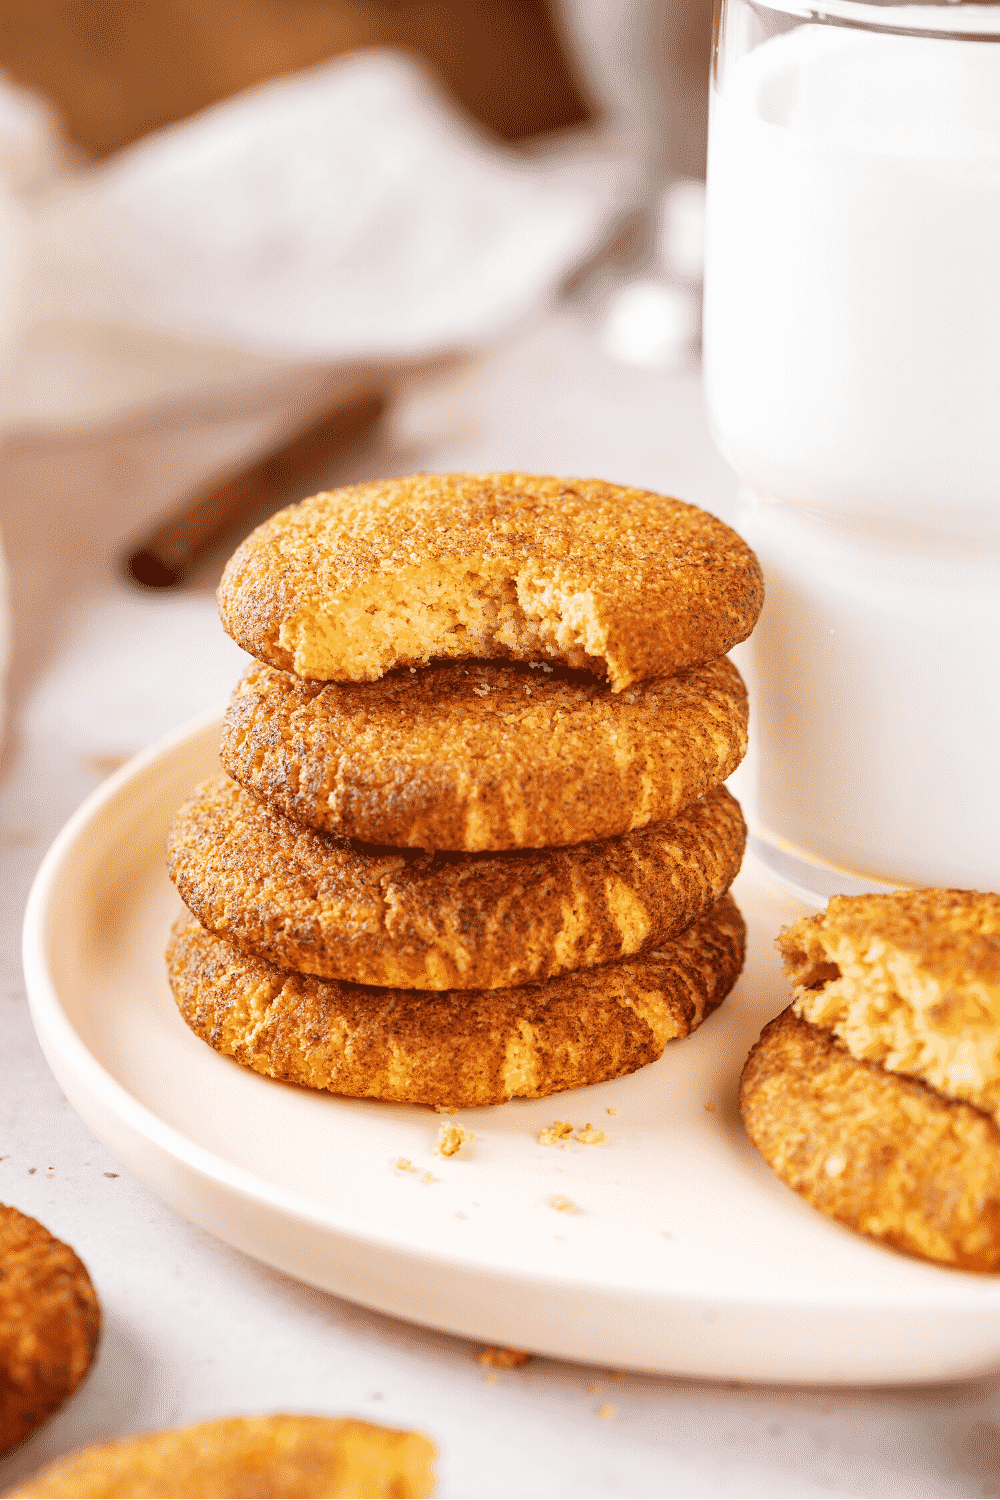 A stack of four snickerdoodle cookies on a white plate. The top cookie has a bite out of the front of it and there is a glass of milk directly to the right of the stack.